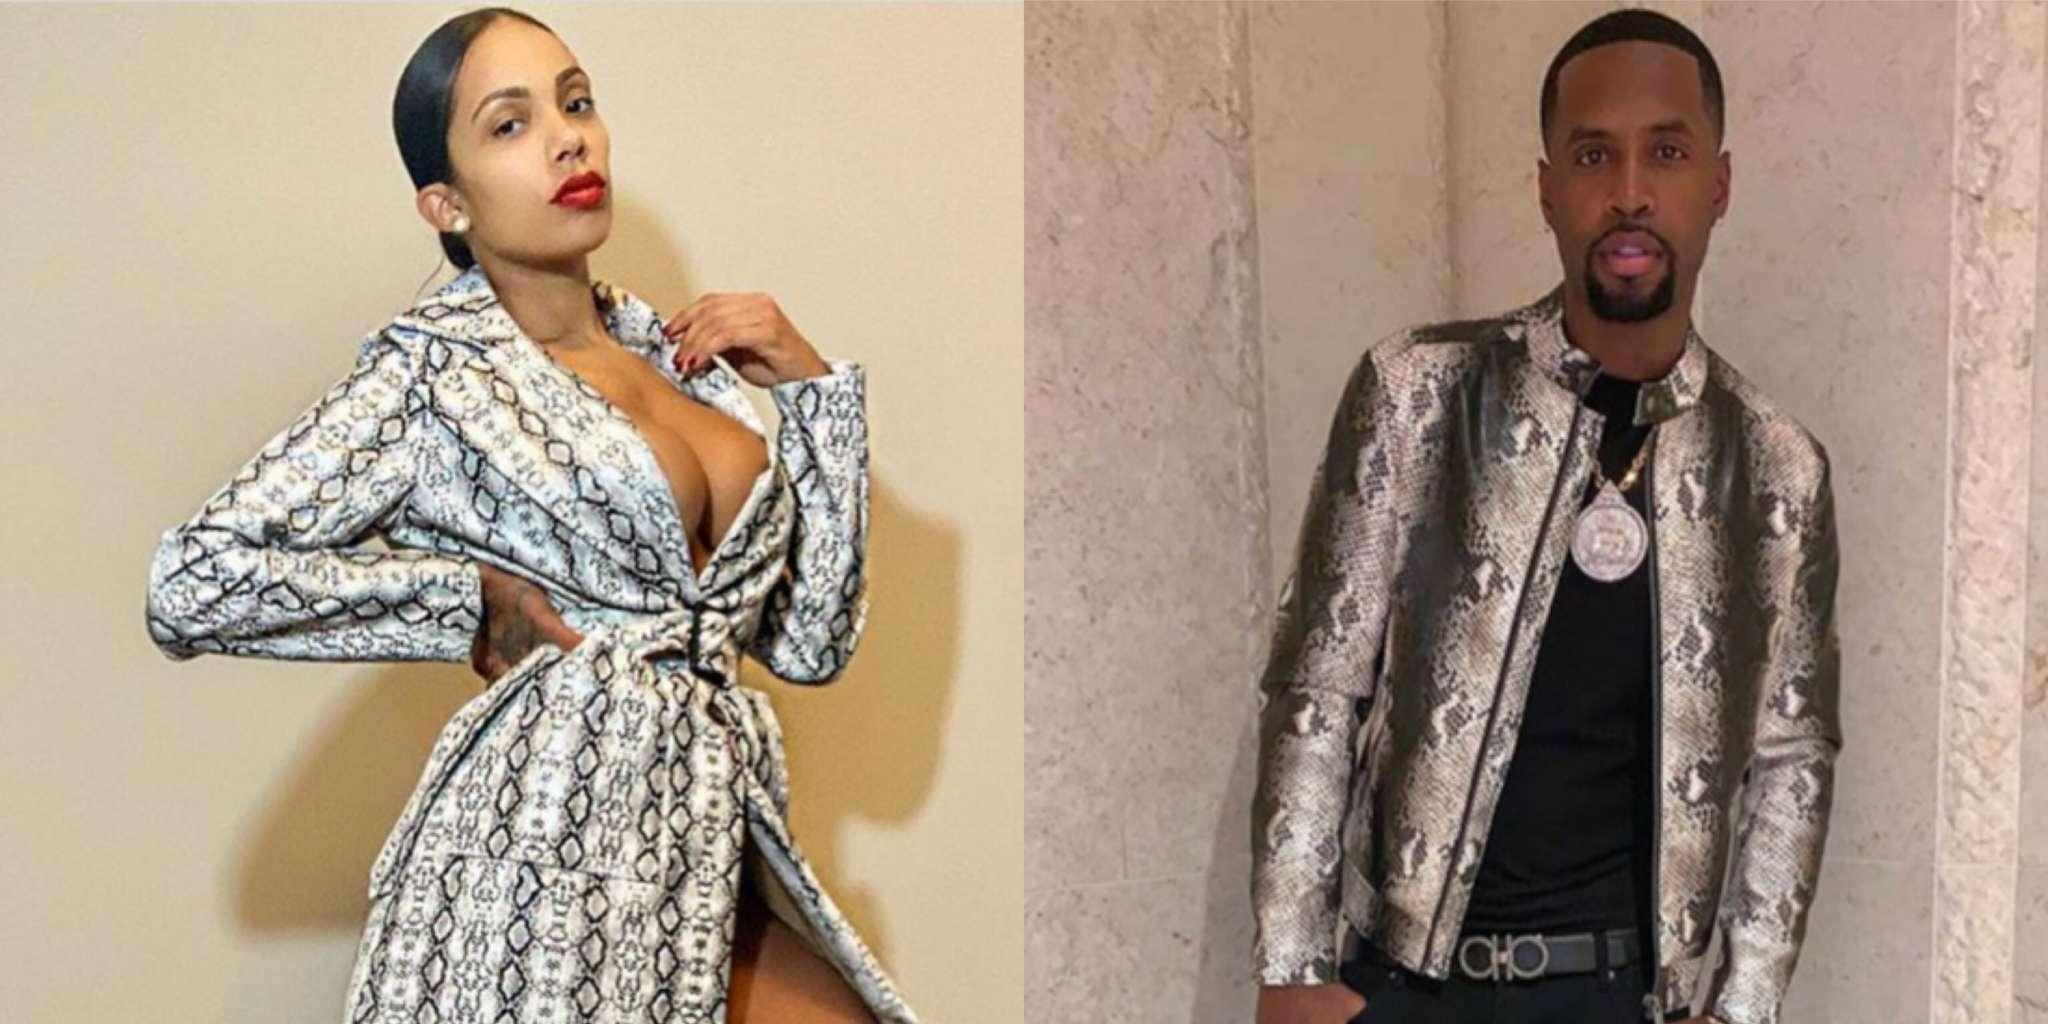 Erica Mena Is Intensively Preparing For Safaree's Birthday - People Bash Her For Taking Him Back Following The Cheating Rumors